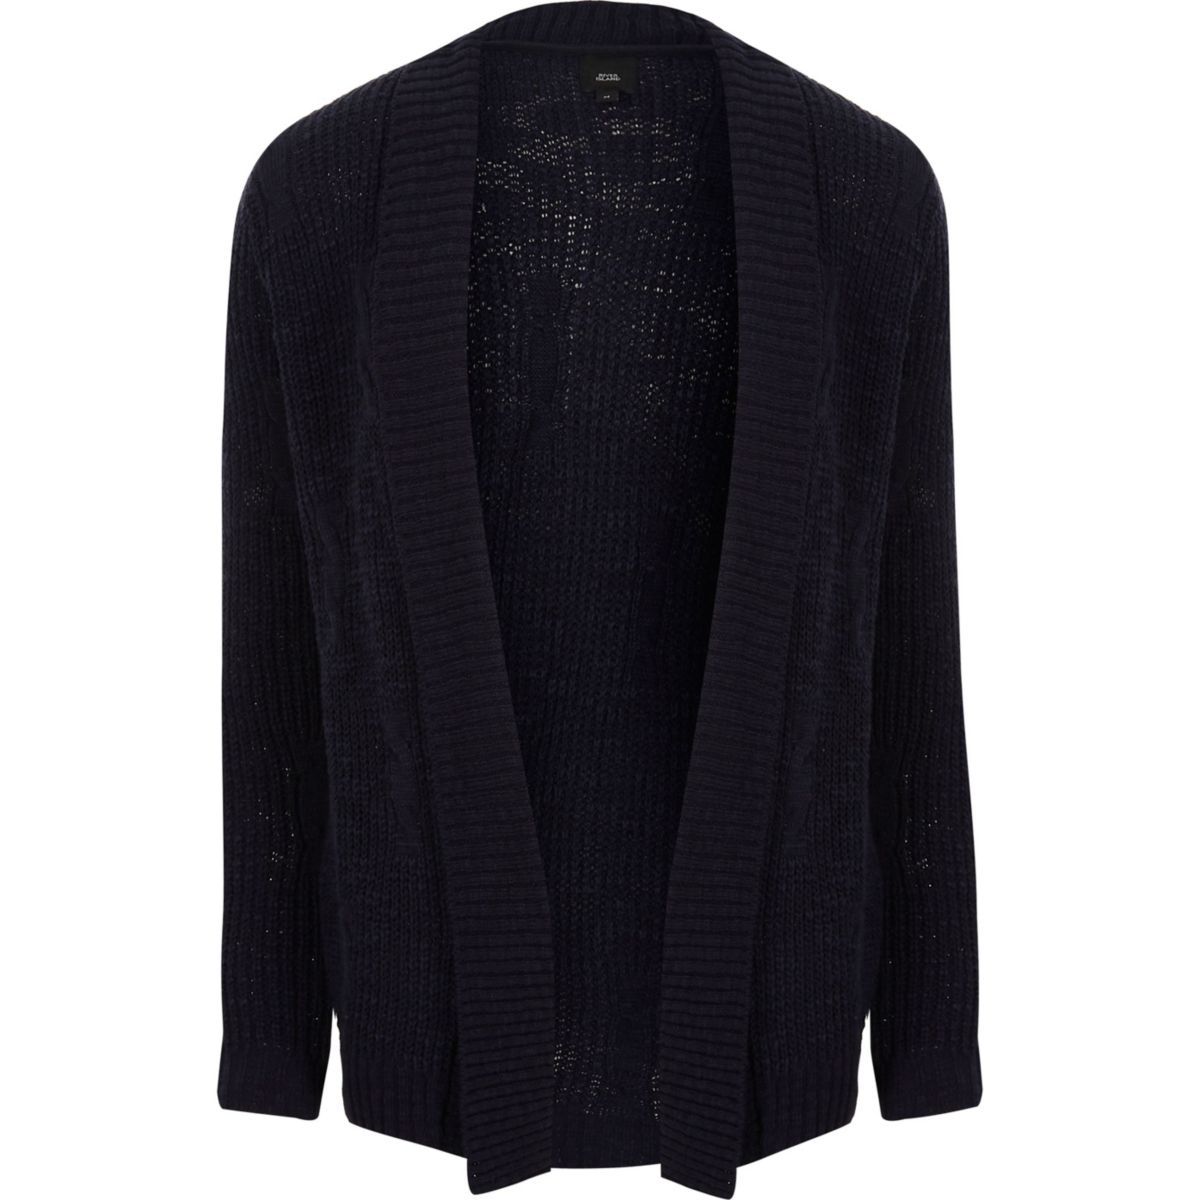 Navy rib cable knit slim fit cardigan